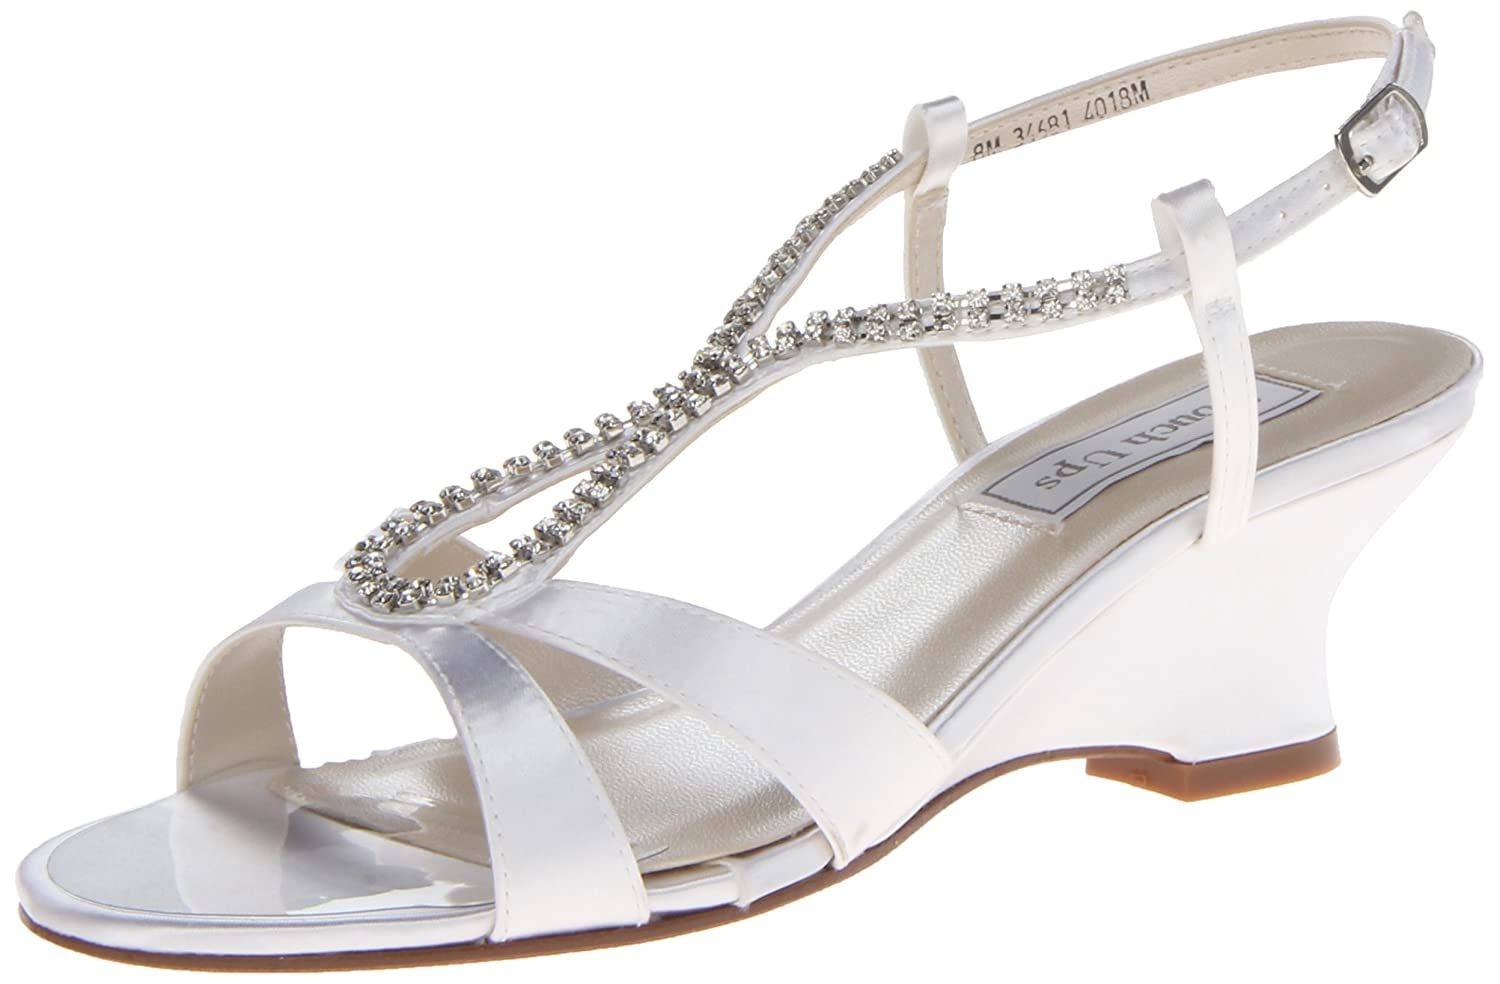 Touch Ups Women's Bernie Wedge Sandal B00FYJI9SW 12 B(M) US|White Satin